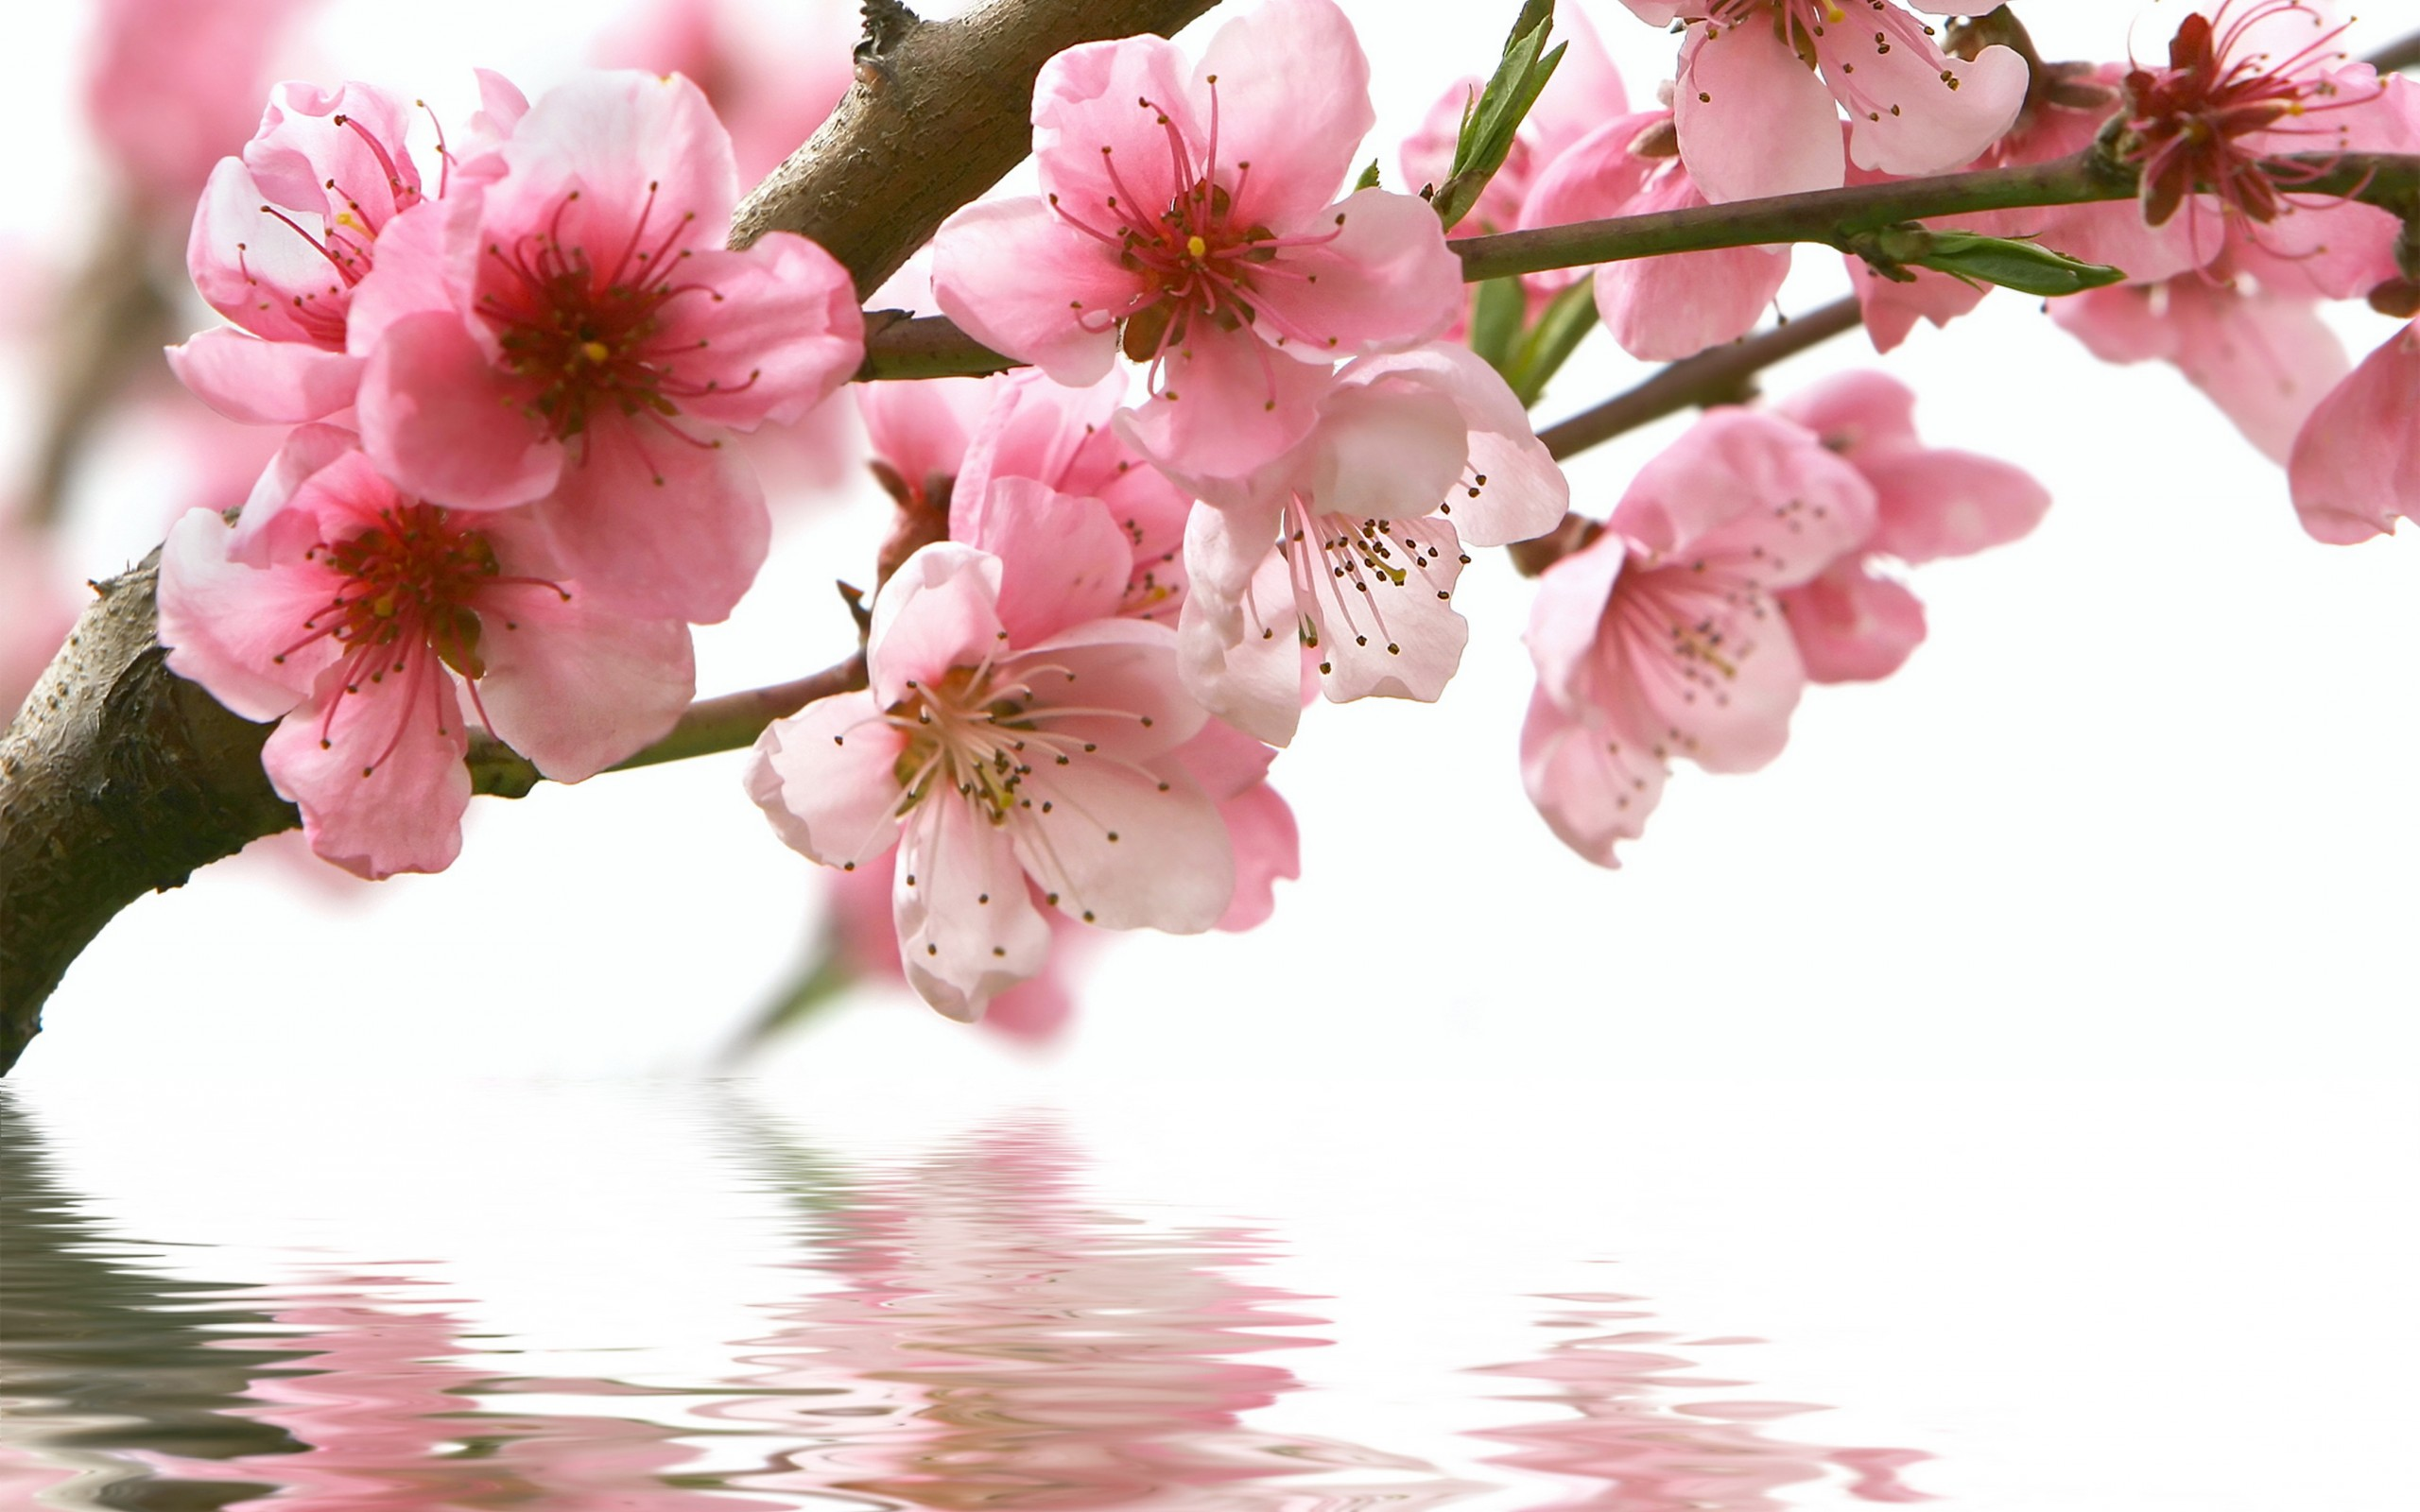 Wallpaper spring flowers hd photo pic wpb00433 wallpaper download mightylinksfo